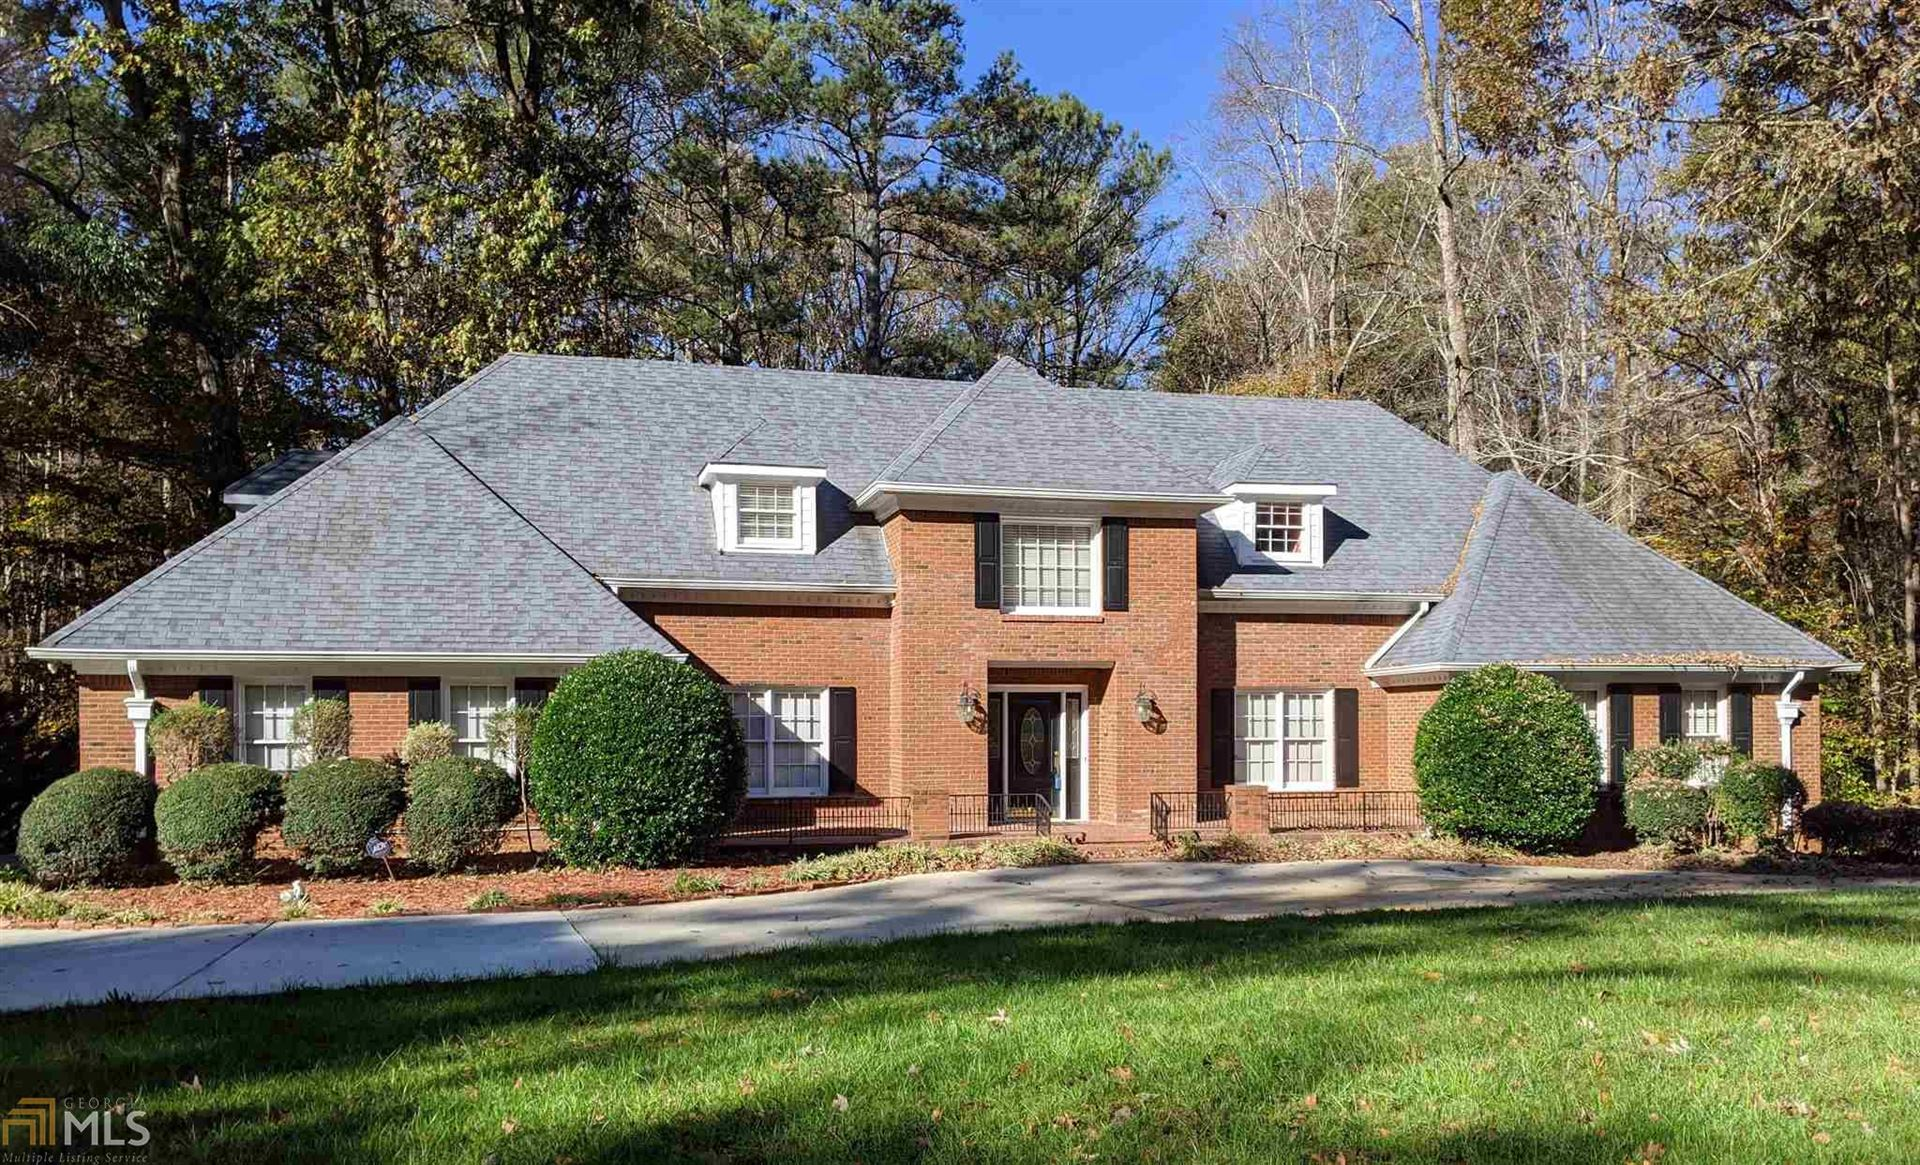 5790 Silver Ridge Dr, Stone Mountain, GA 30087 - #: 8891891